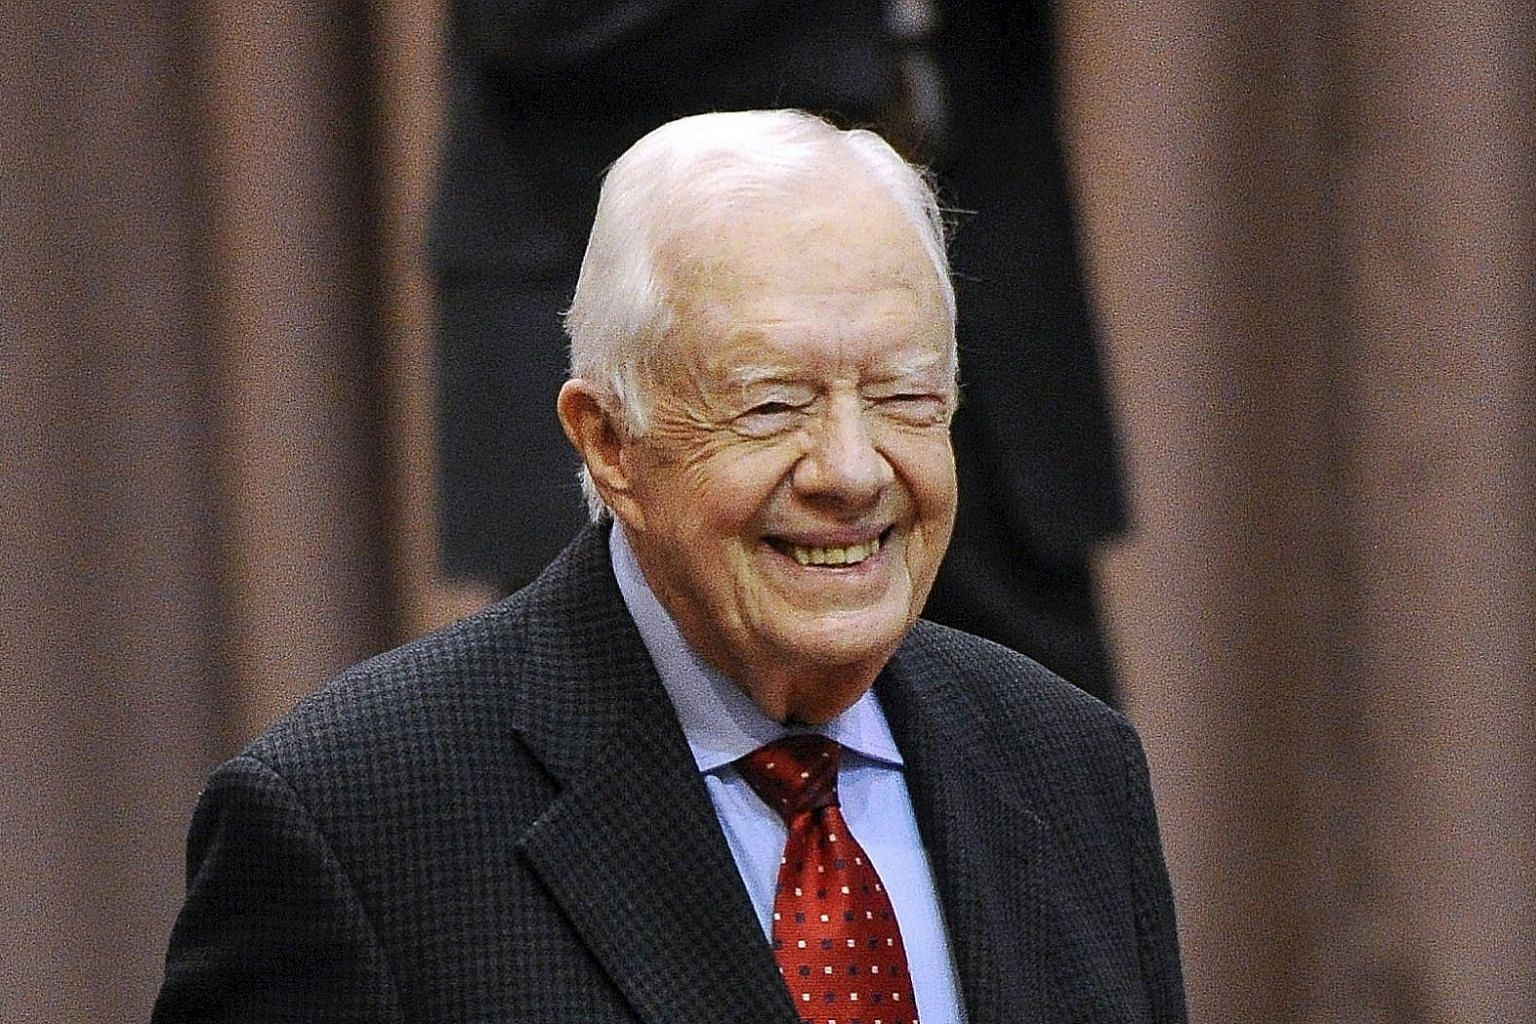 Former US president Jimmy Carter arriving for a news conference in Atlanta to discuss his cancer diagnosis and treatment on Thursday.